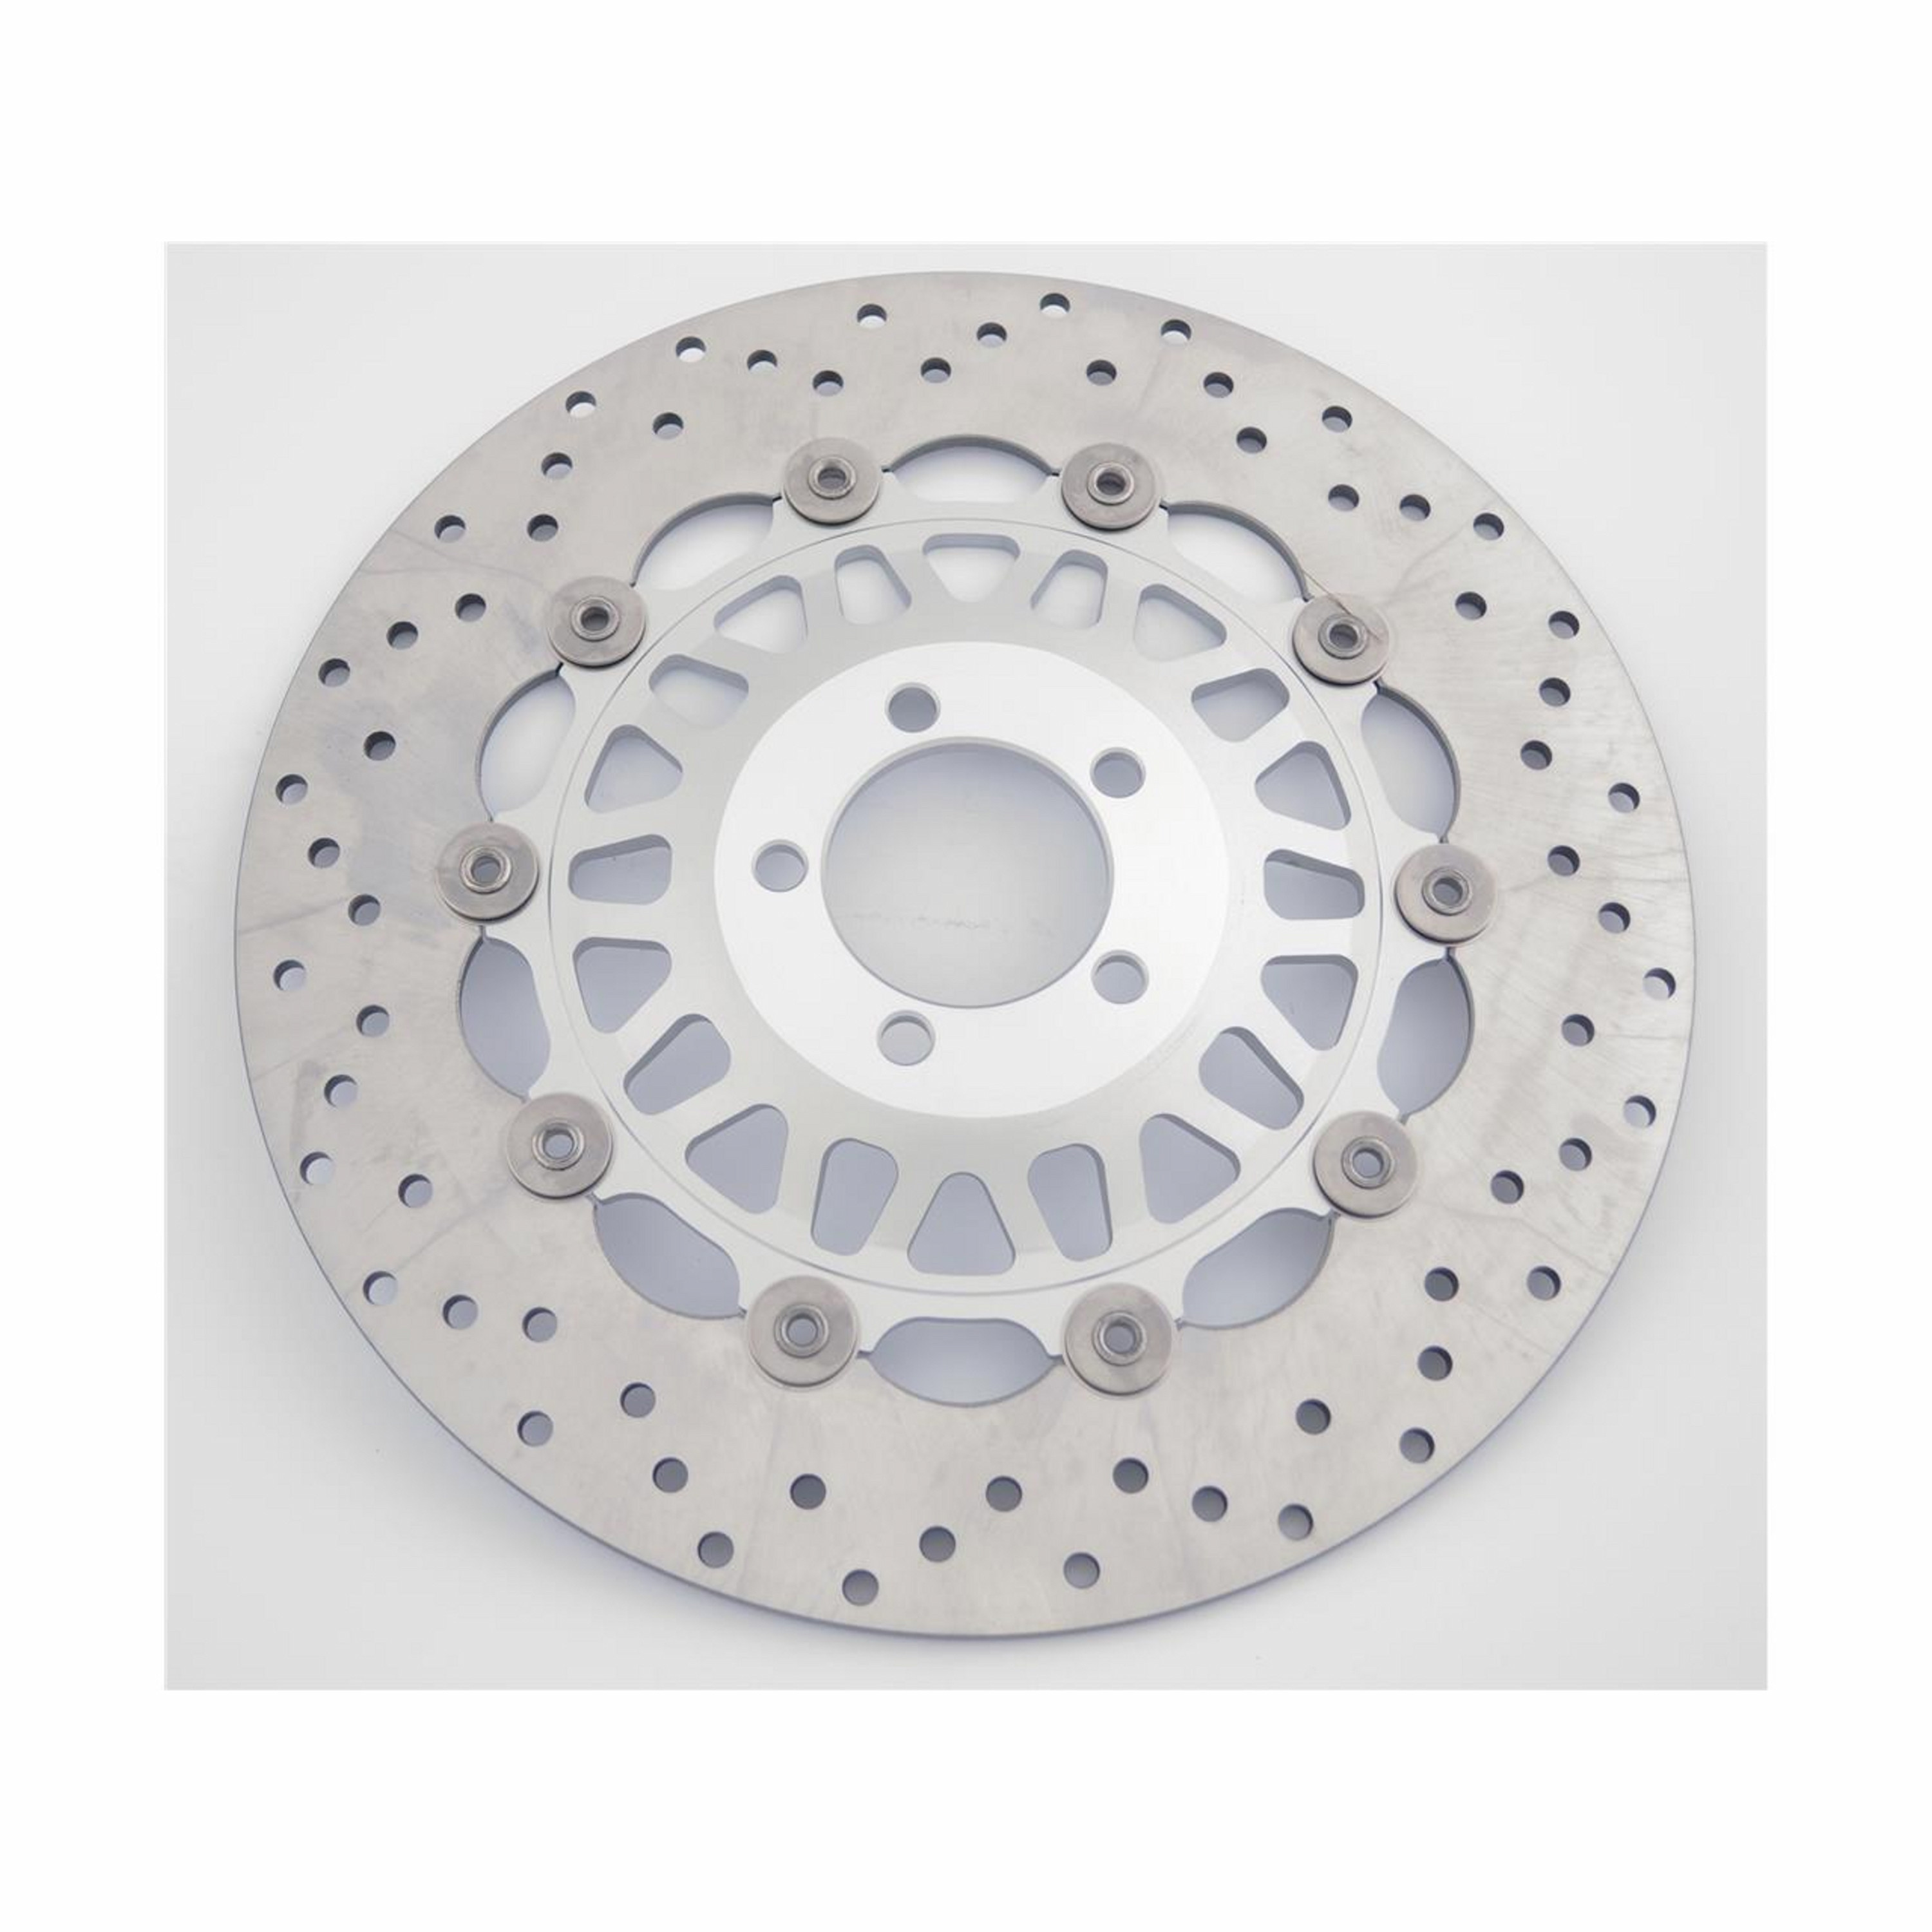 BRAKE DISC NISSIN | TYPE SD-803 | STANDARD